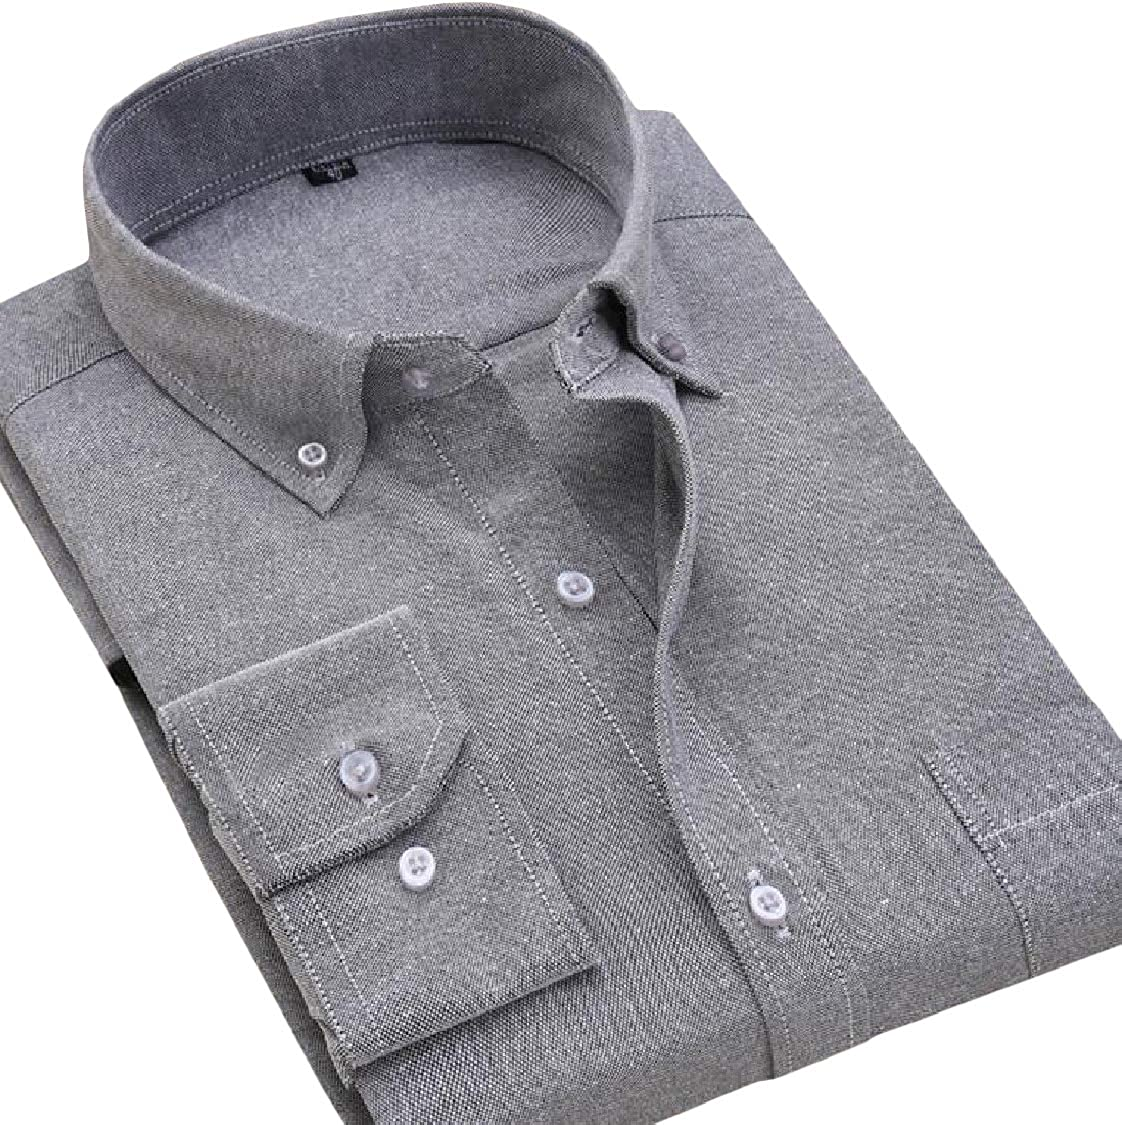 Lutratocro Men Long-Sleeve Oxford Dress Casual Easy-Care Work Shirts